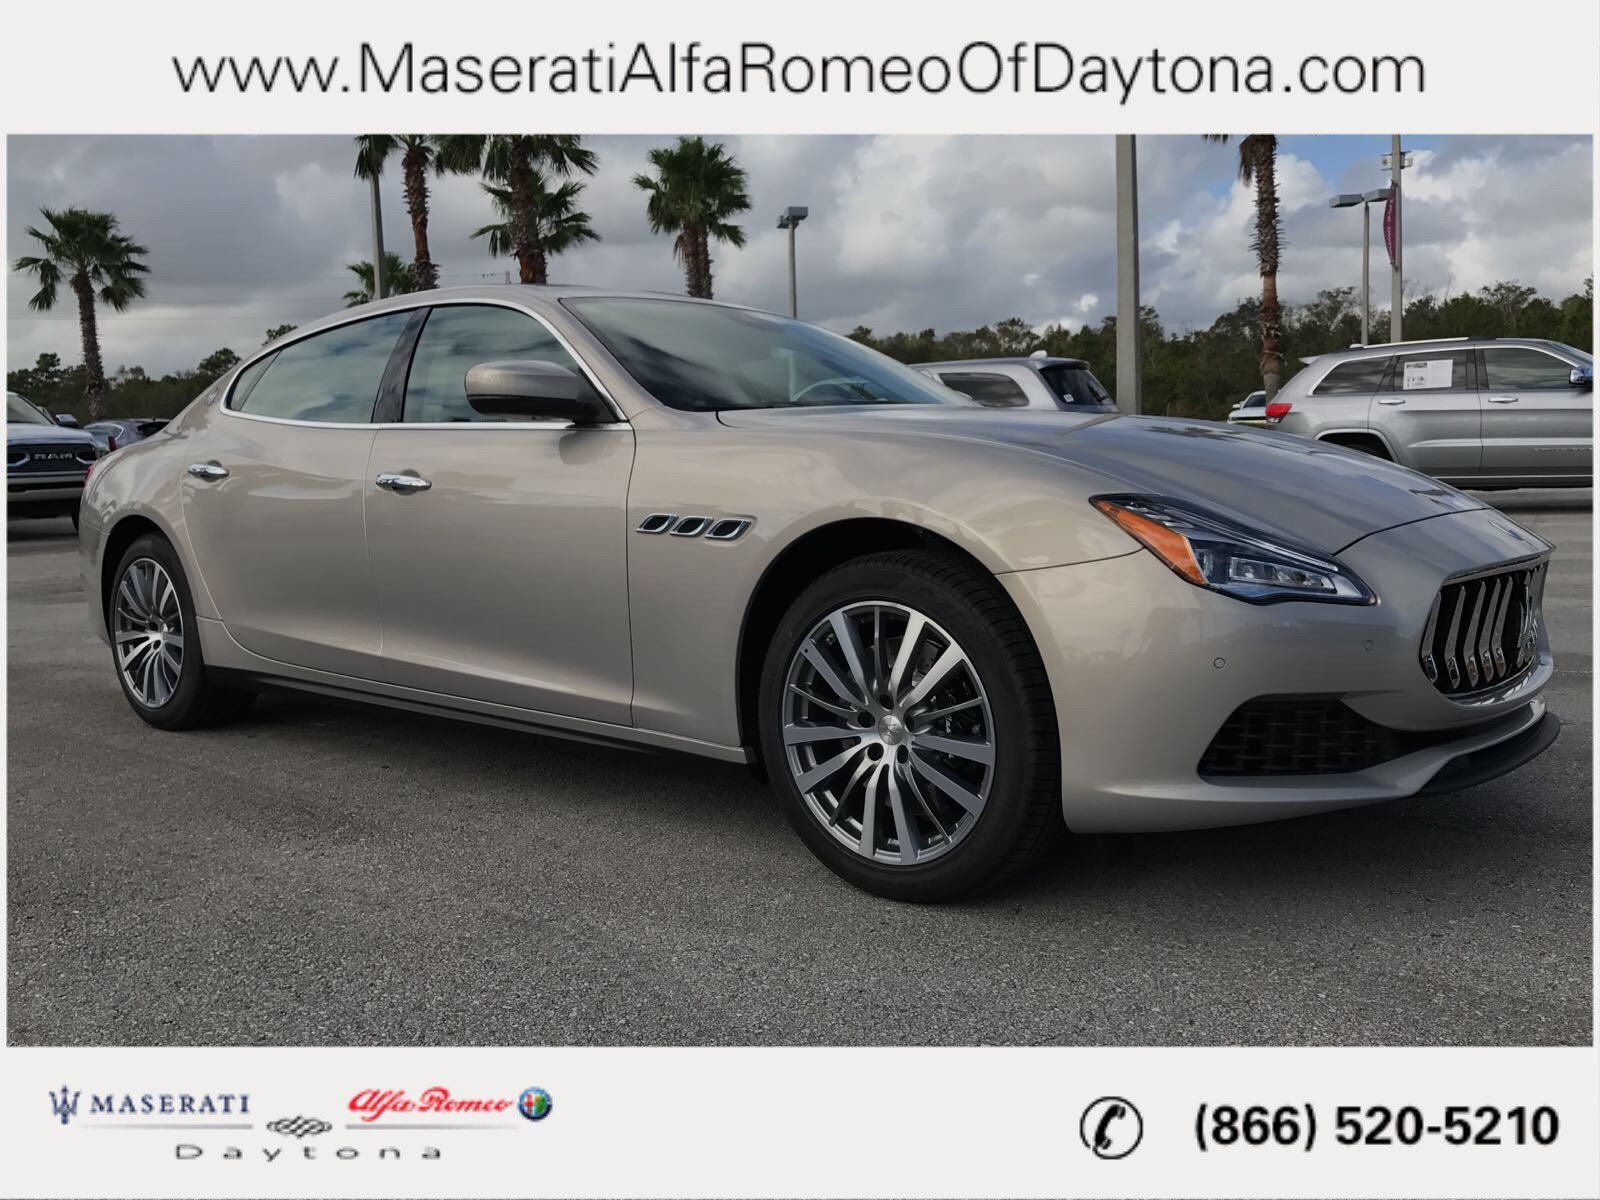 New 2018 Maserati Quattroporte S 4dr Car in Daytona Beach M